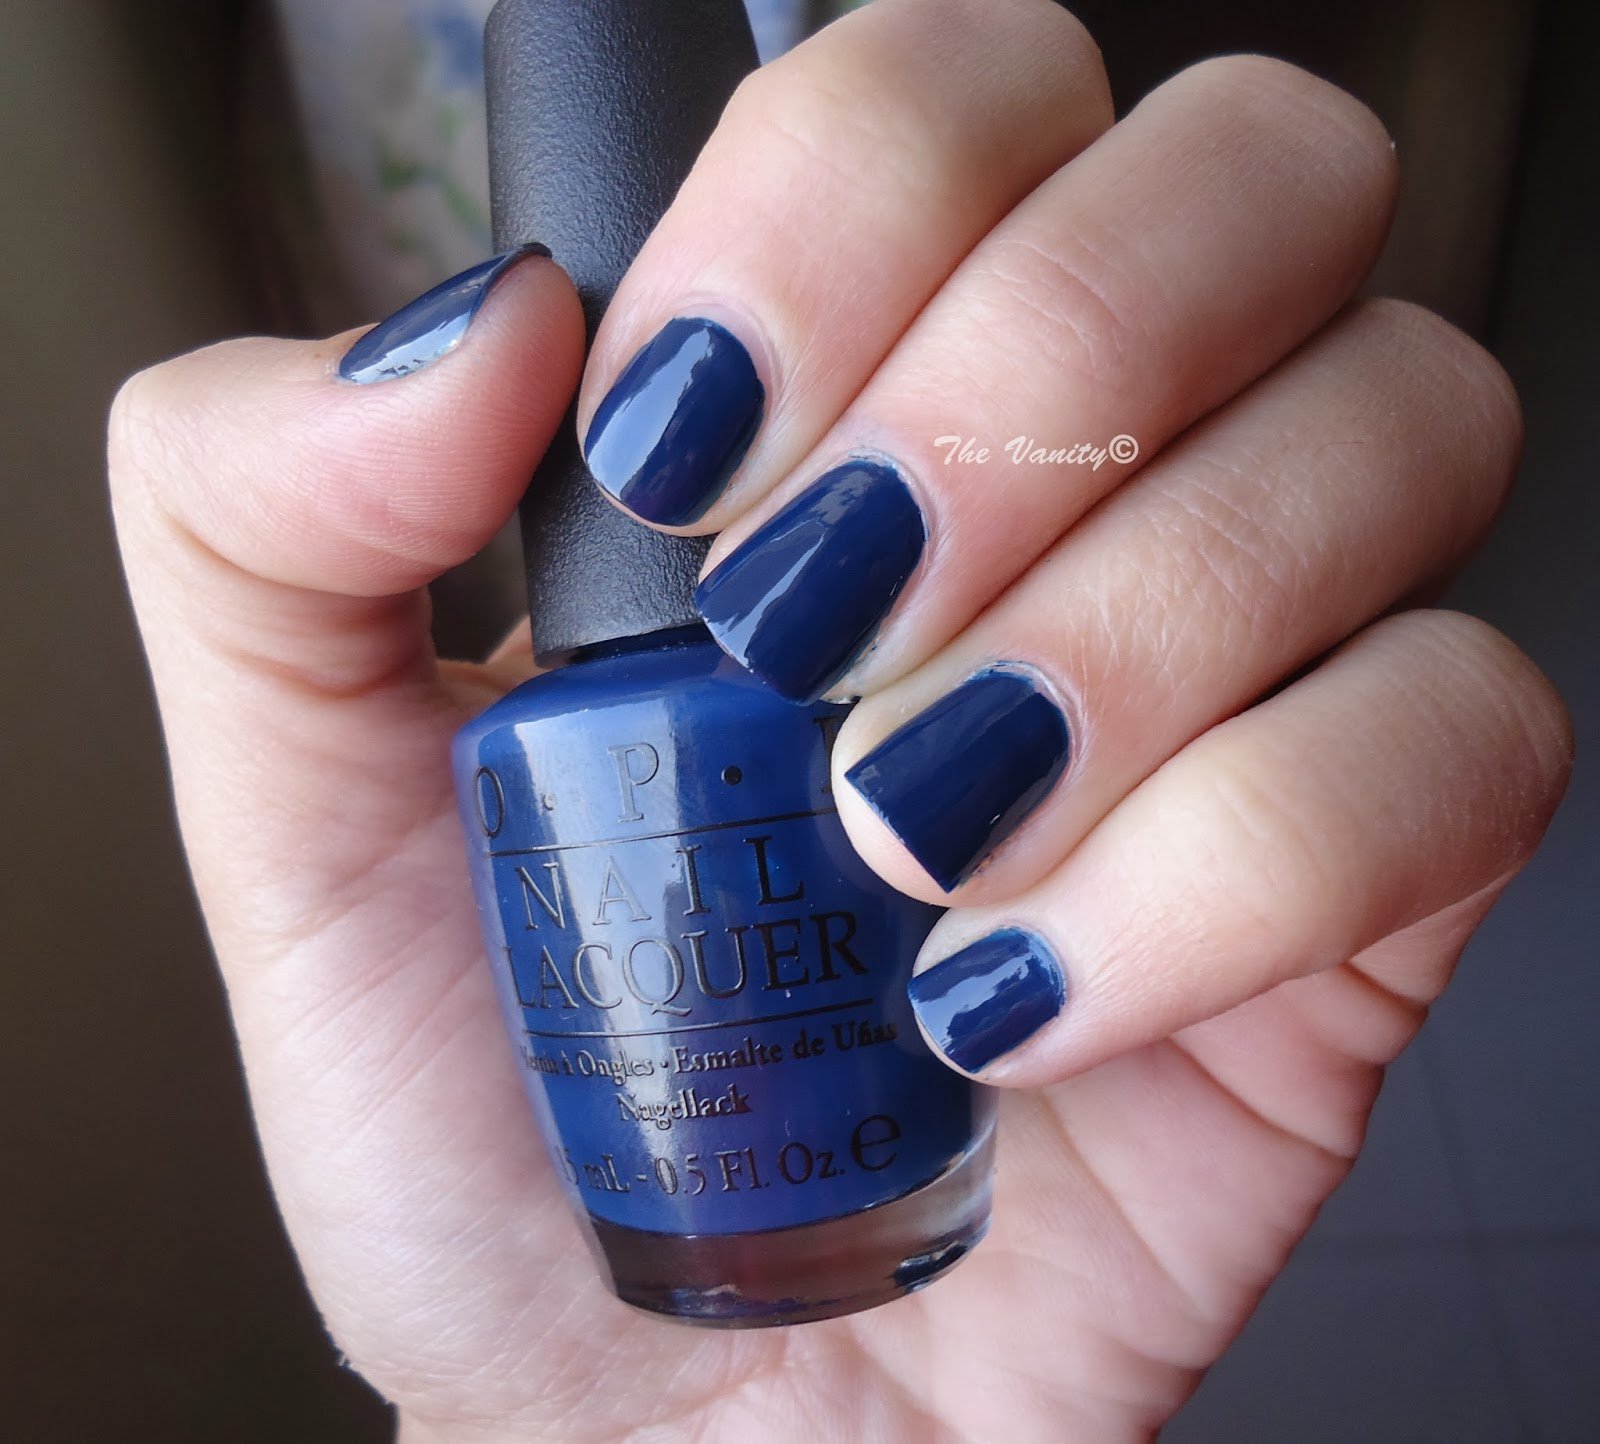 O.P.I EURO CENTRALE COLLECTION nail polish review | The Vanity